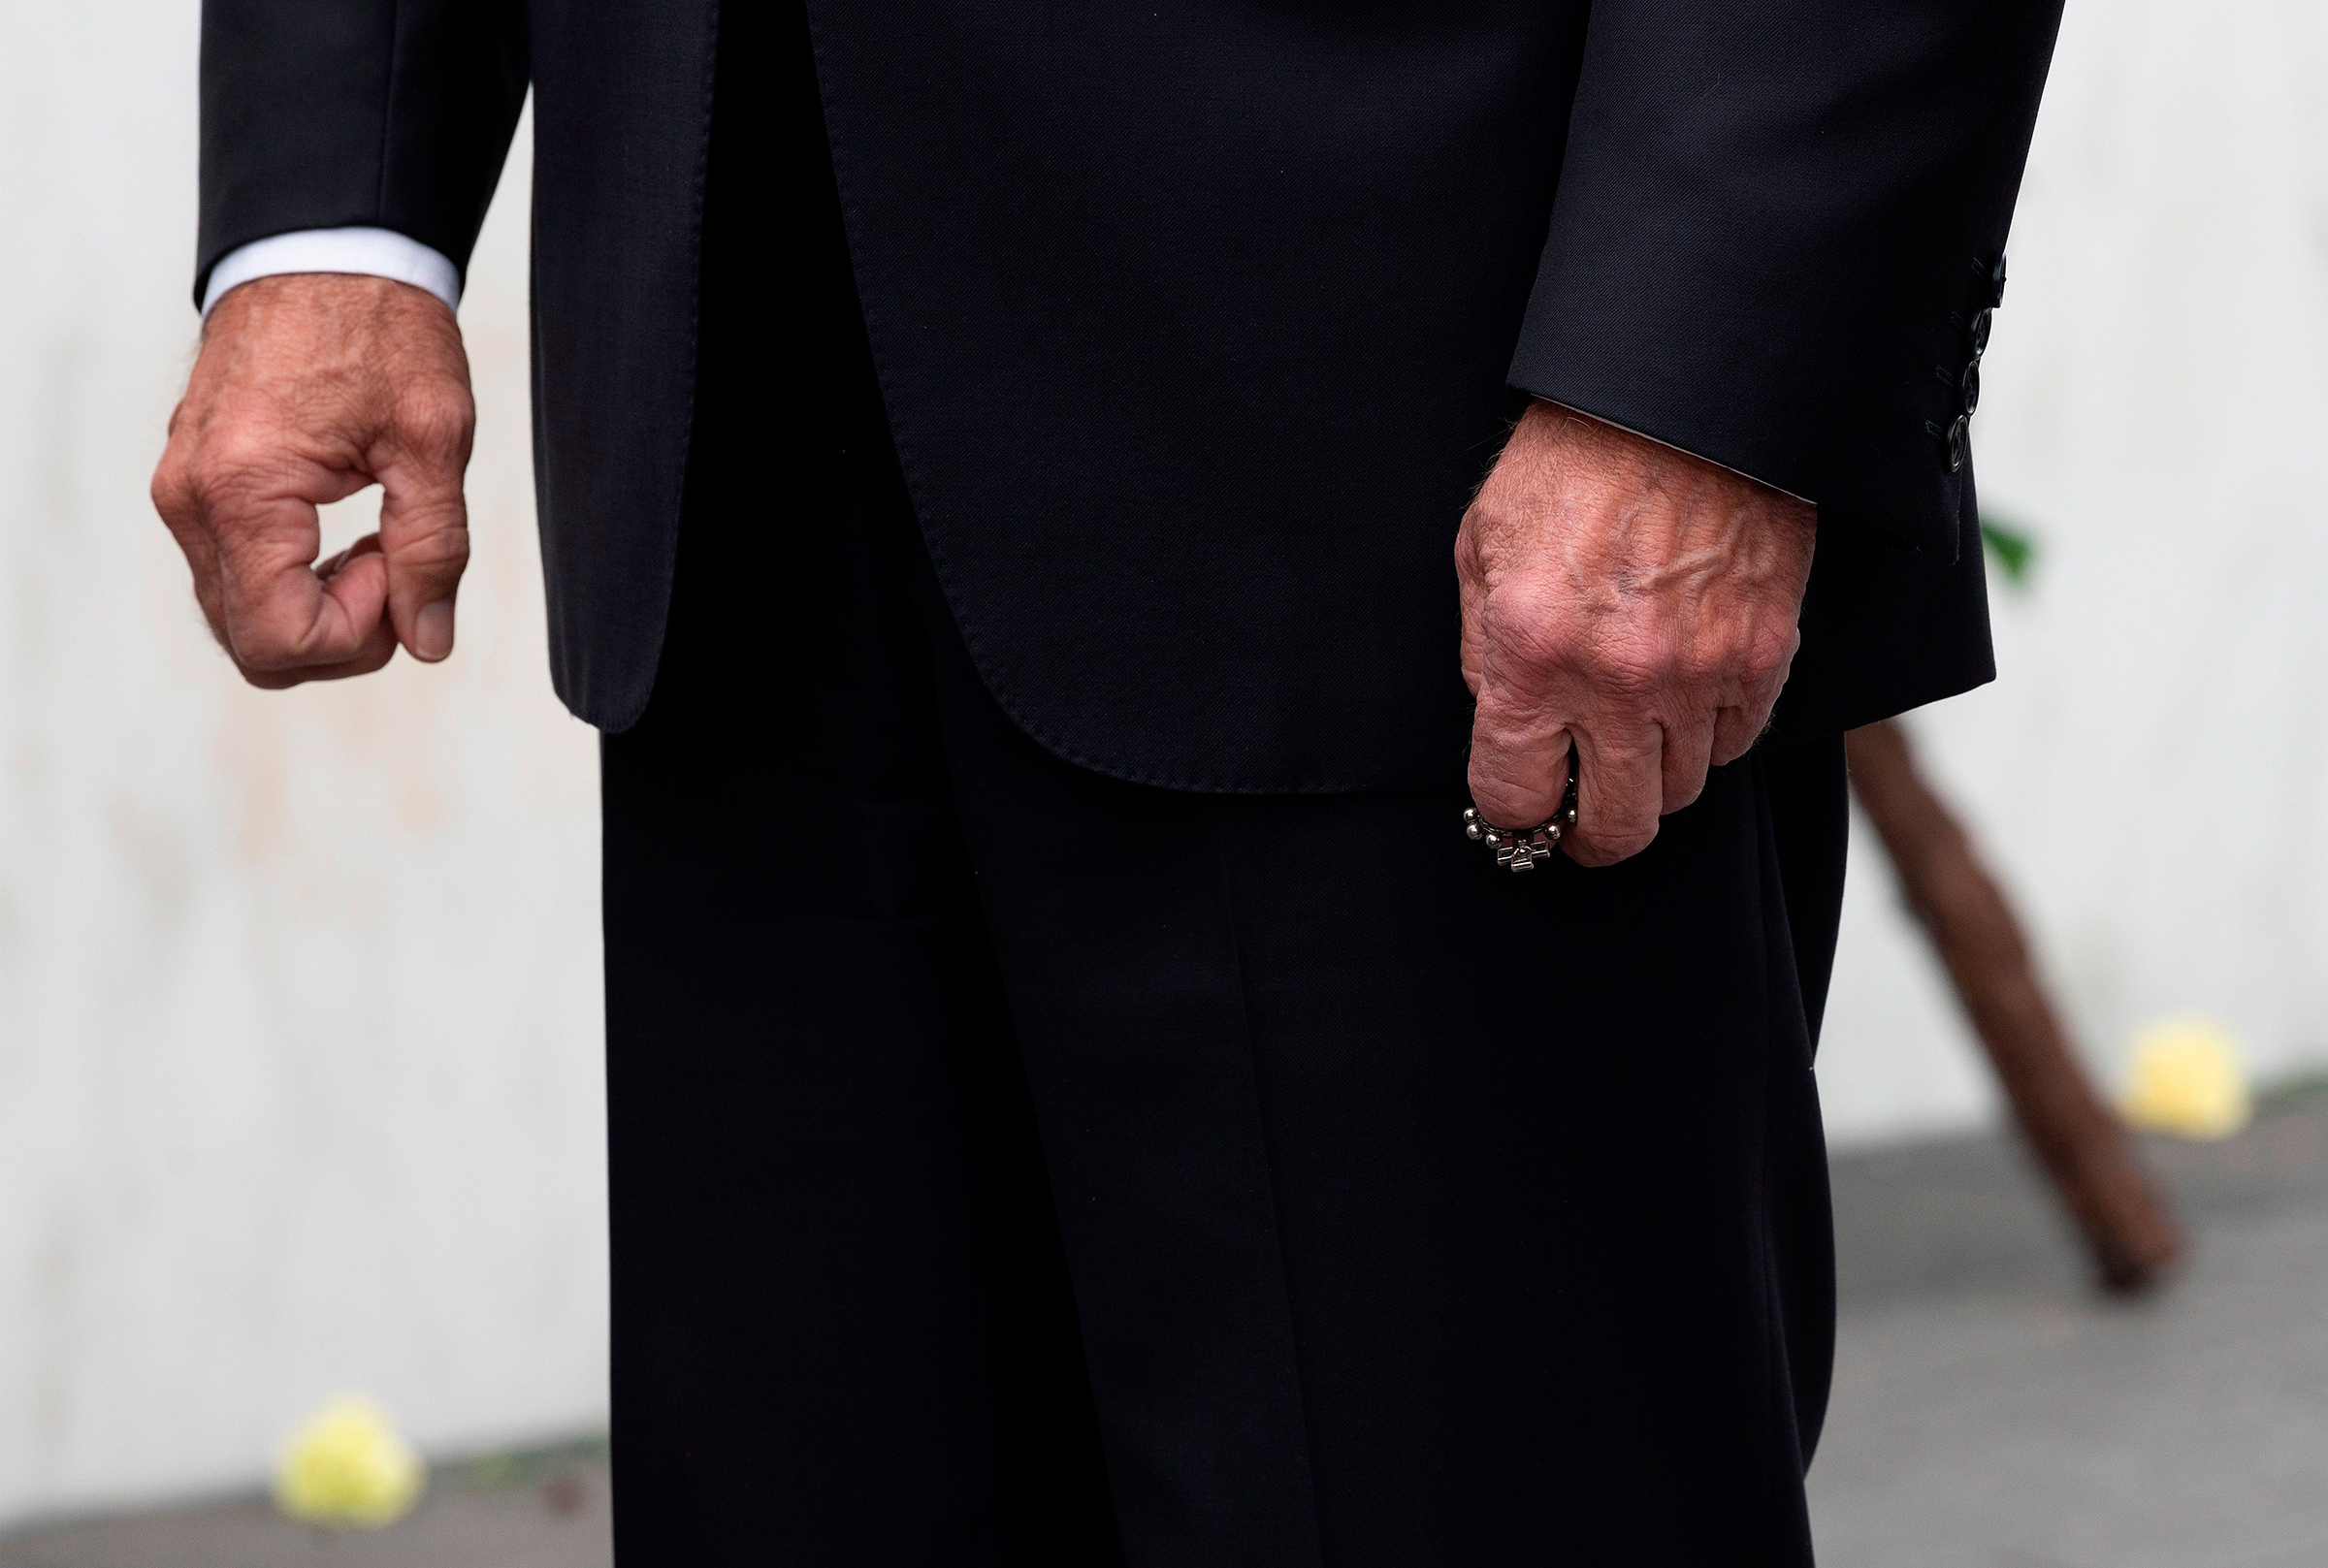 Biden clutches a rosary after laying a wreath on Sept. 11, 2020, at the Flight 93 National Memorial, near Shanksville, Pa.